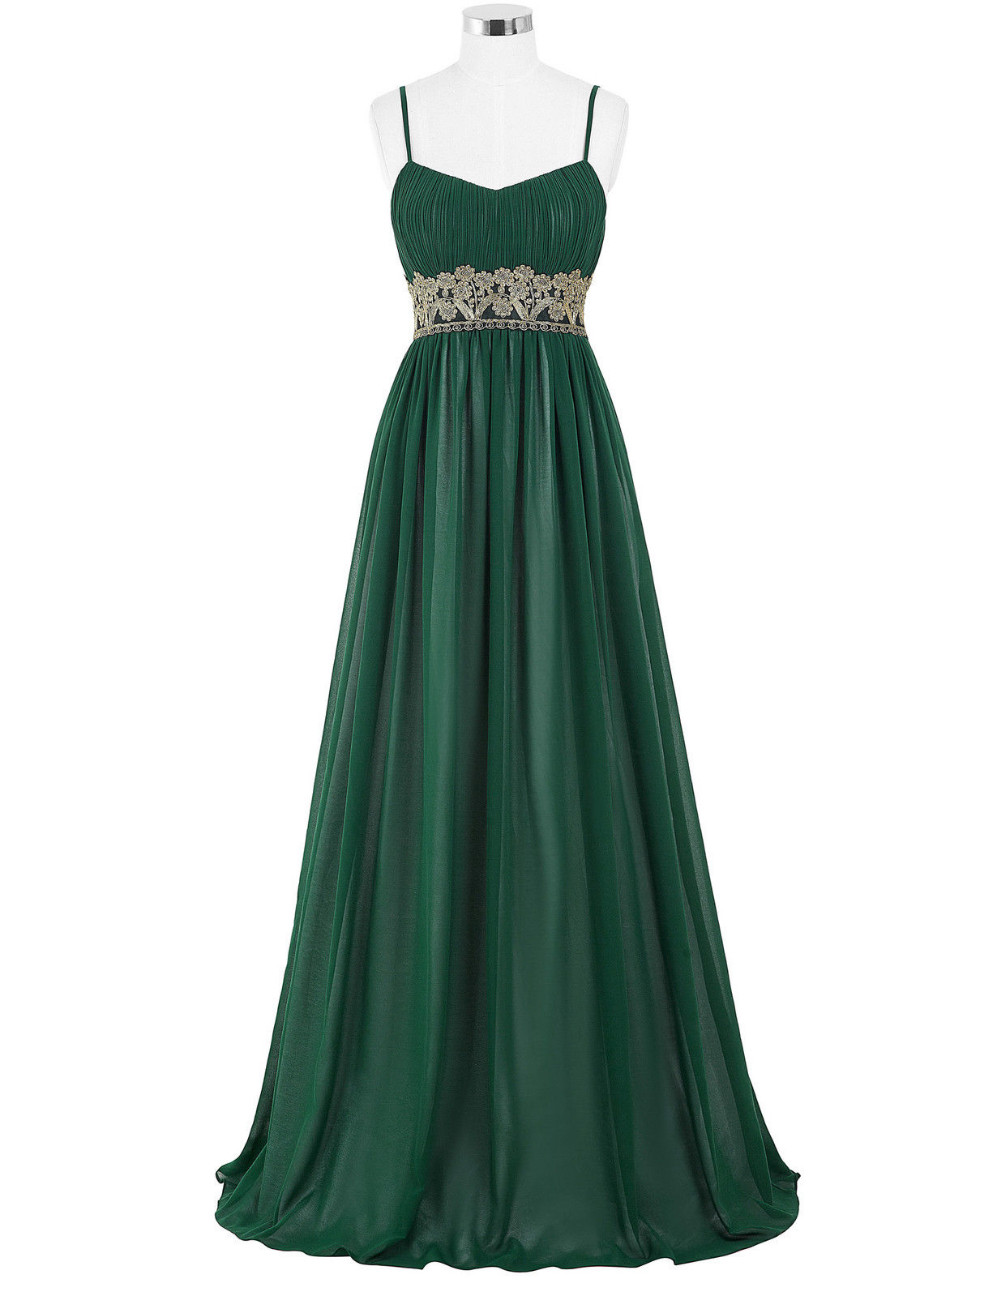 f2fc83c0589 Green Floor Length Chiffon Evening Dress Featuring Spaghetti Strap Ruched  V-Neck Bodice with Floral Lace Appliqués Belt